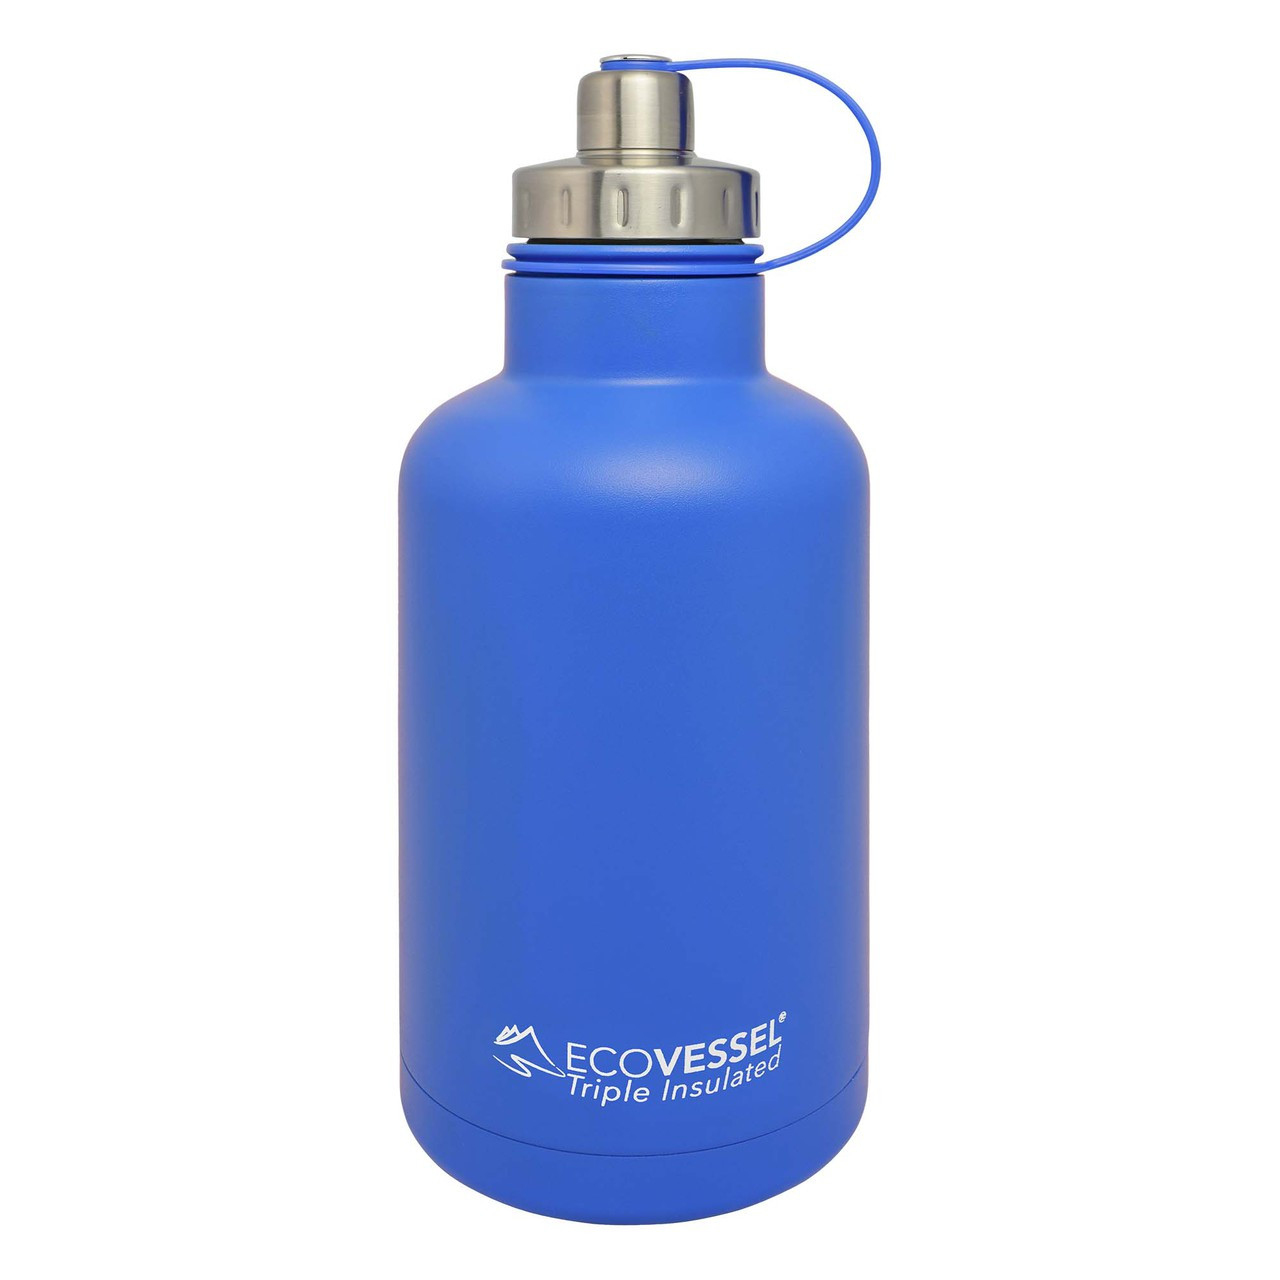 Eco Vessel Boss Triple Insulated Stainless Steel Growler